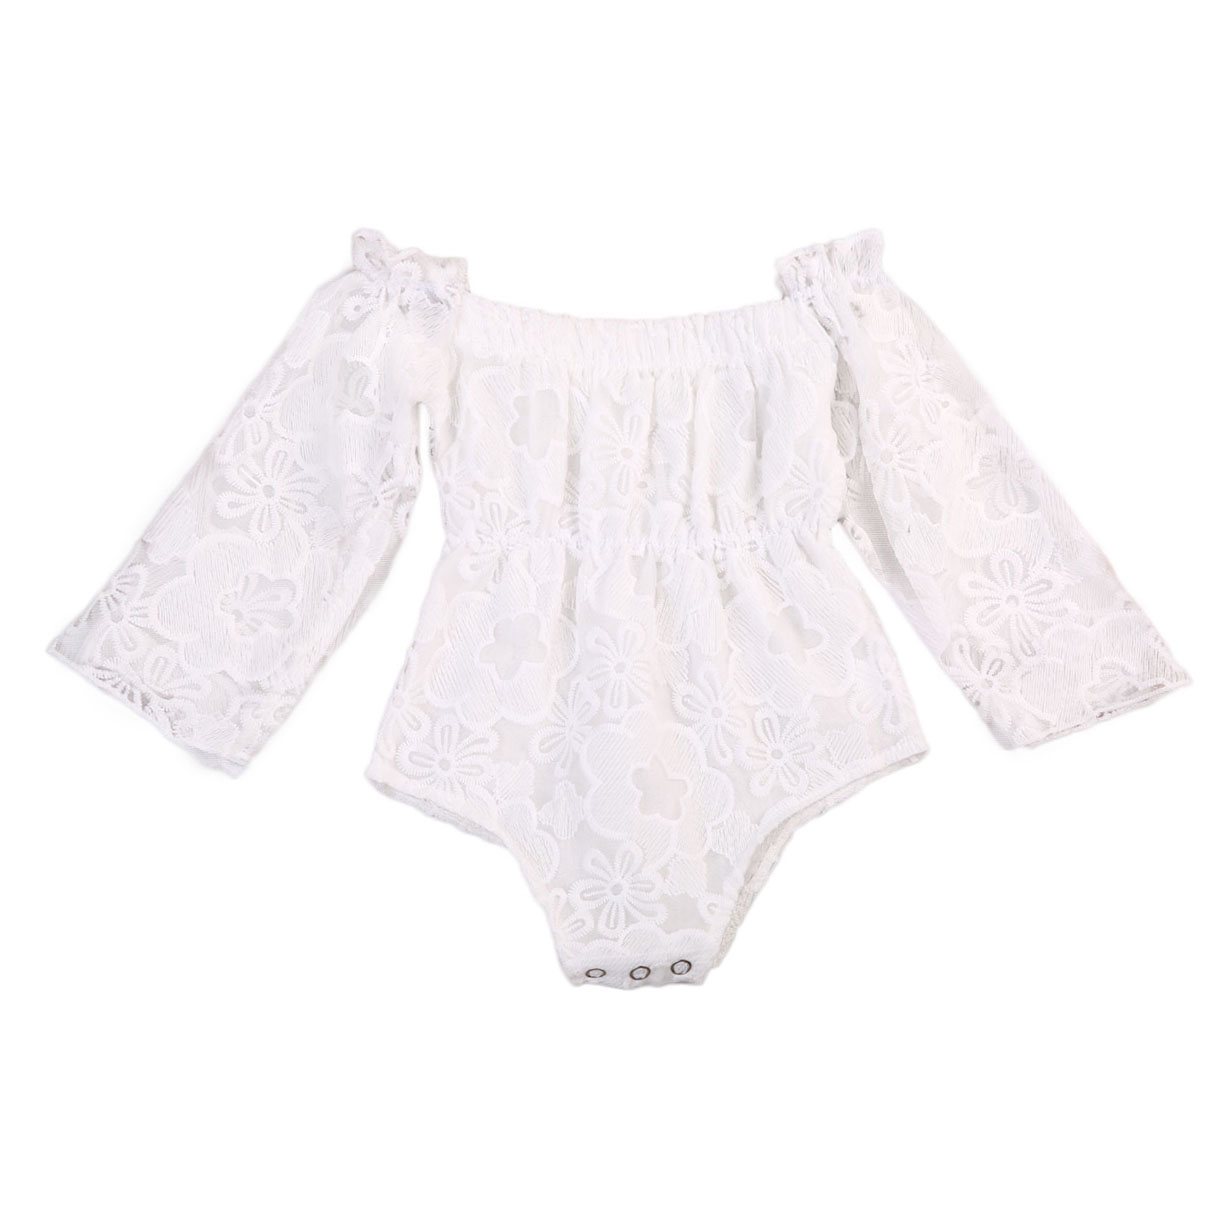 Pudcoco Newborn Toddler Baby Girls Lace Romper Long Sleeve Off Shoulder Jumpsuit Outfits Sunsuit Summer Cute Clothes Onesie newborn infant baby clothes girls floral lace off shoulder ruffle romper jumpsuit outfit sunsuit summer one piece baby onesie